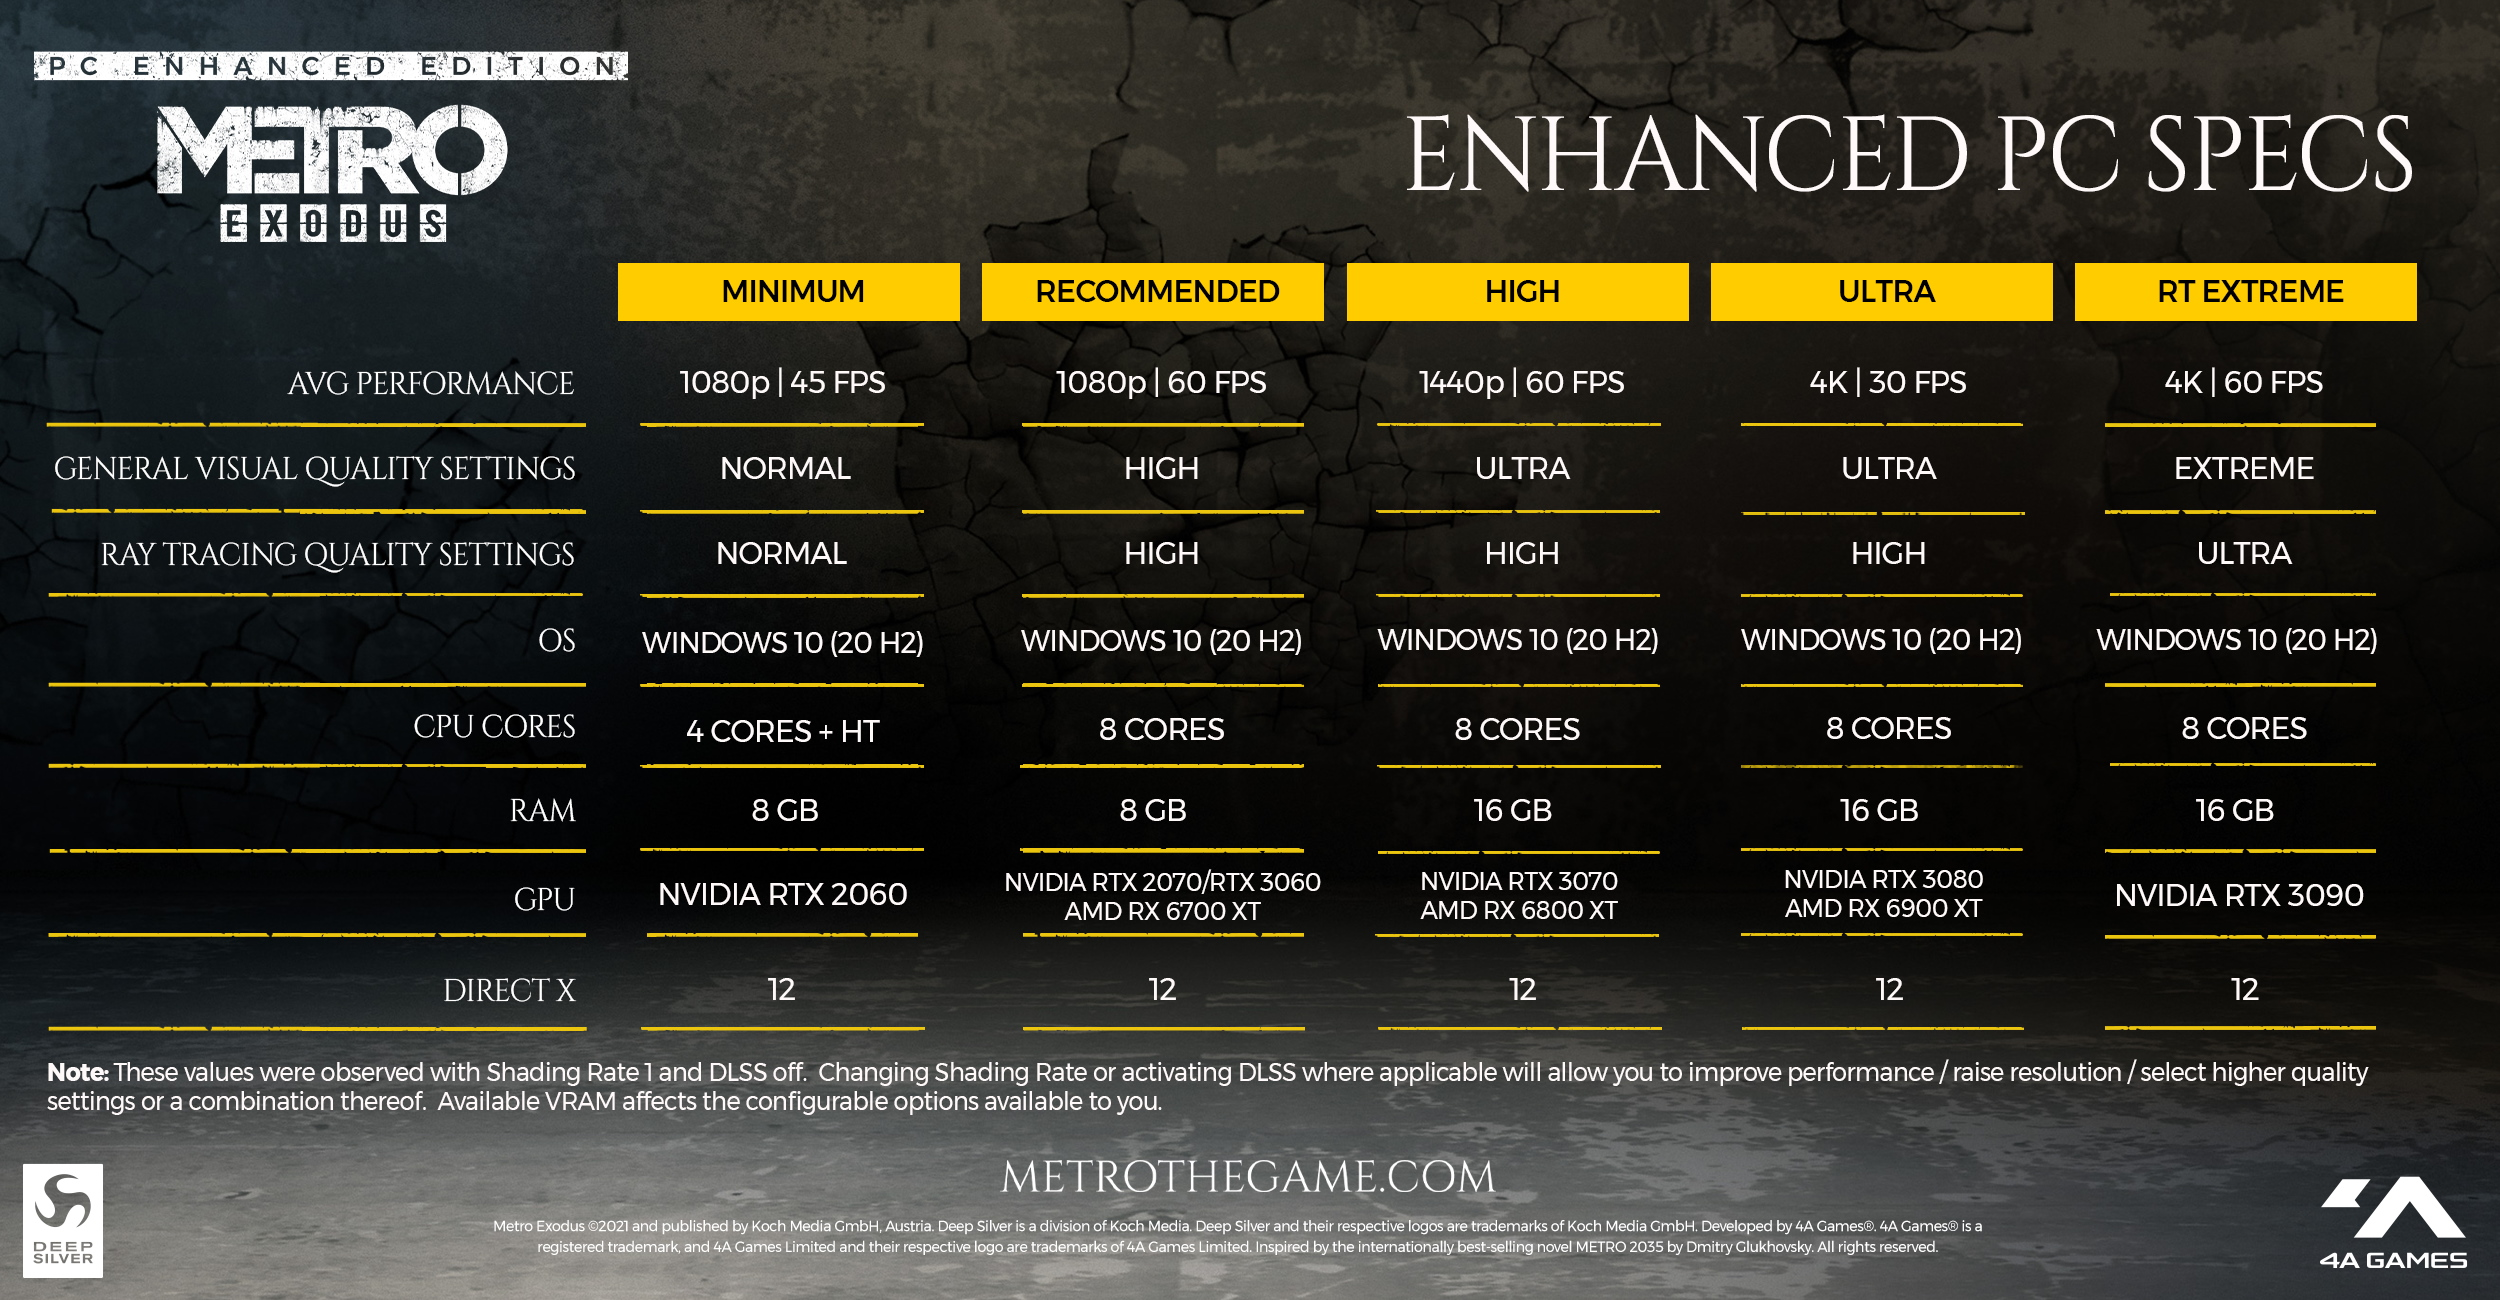 4A Games provides this handy infographic explaining the system requirements.